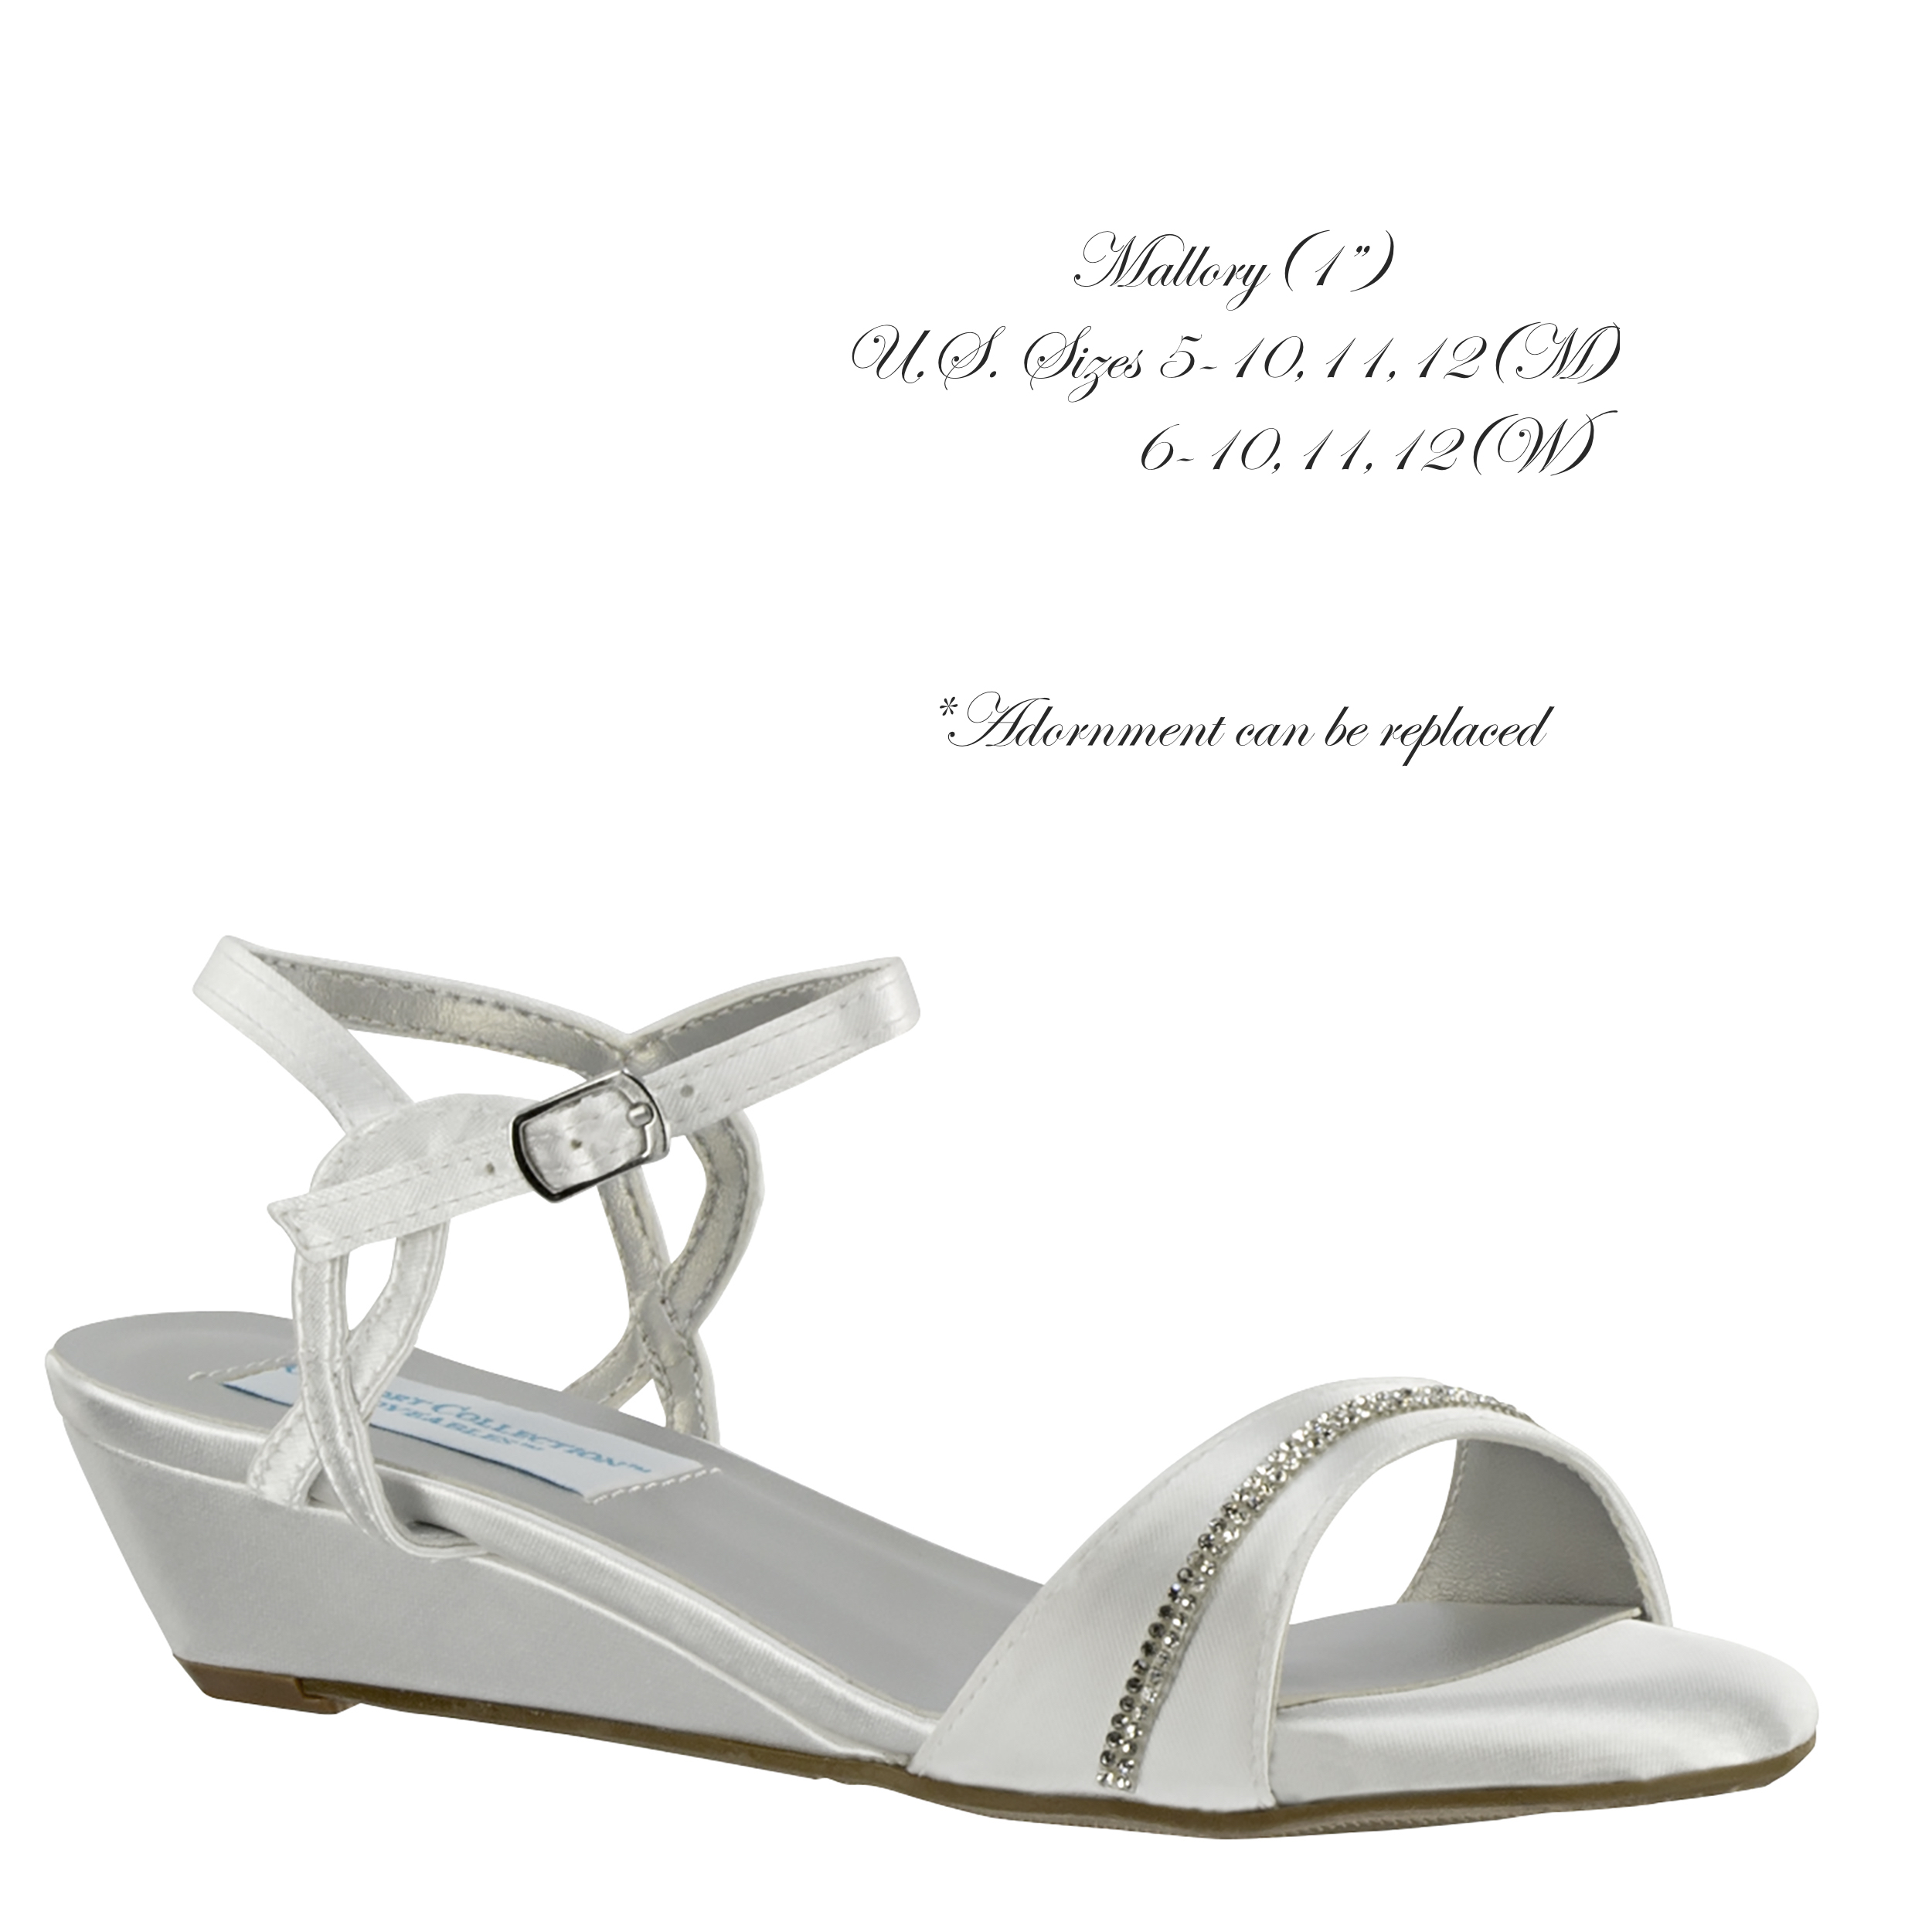 Mallory White Satin - 52216 - 1